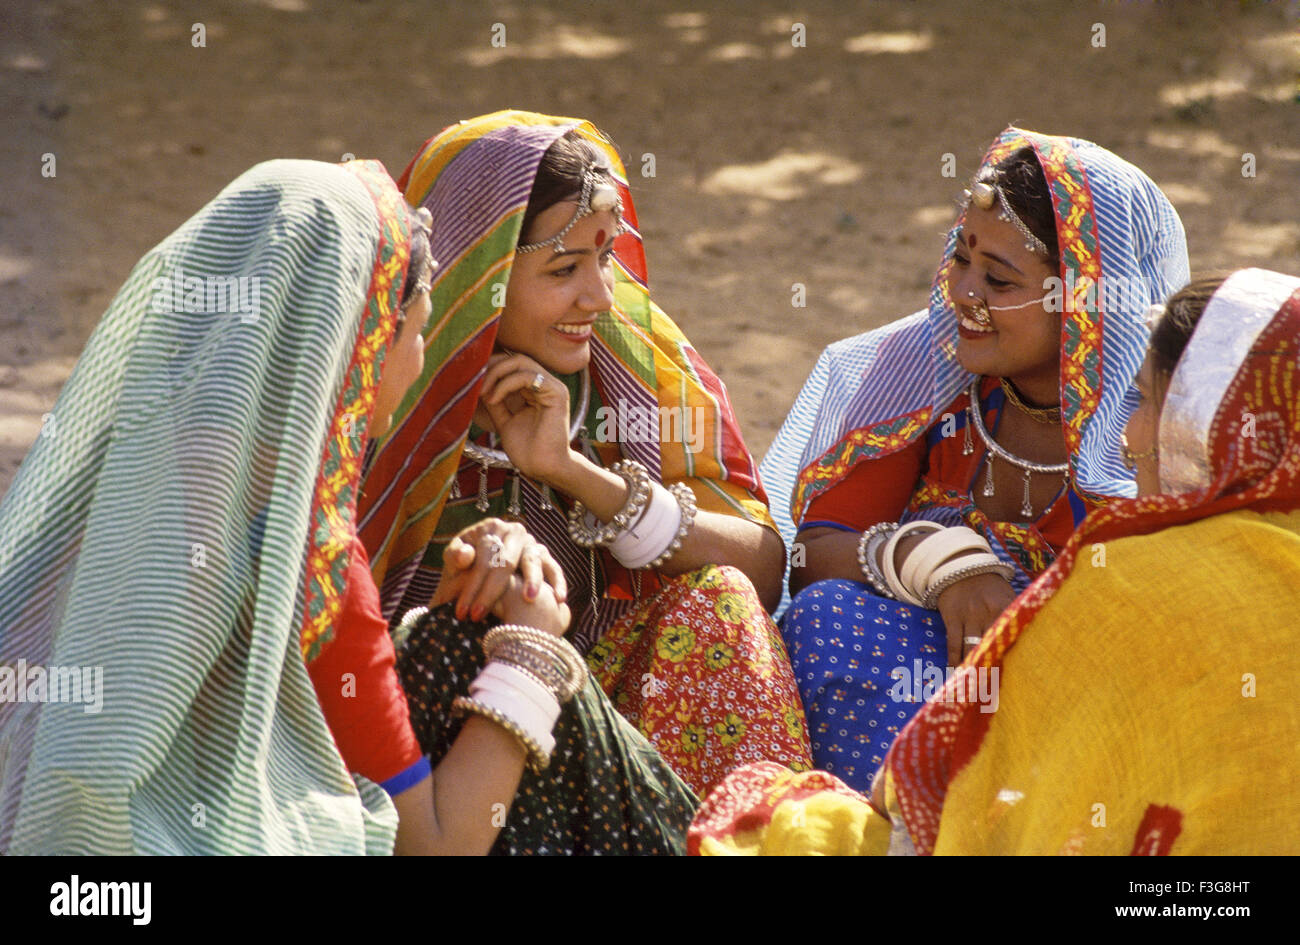 Indian Women Jaipur Rajasthan Fine Art Photography India No